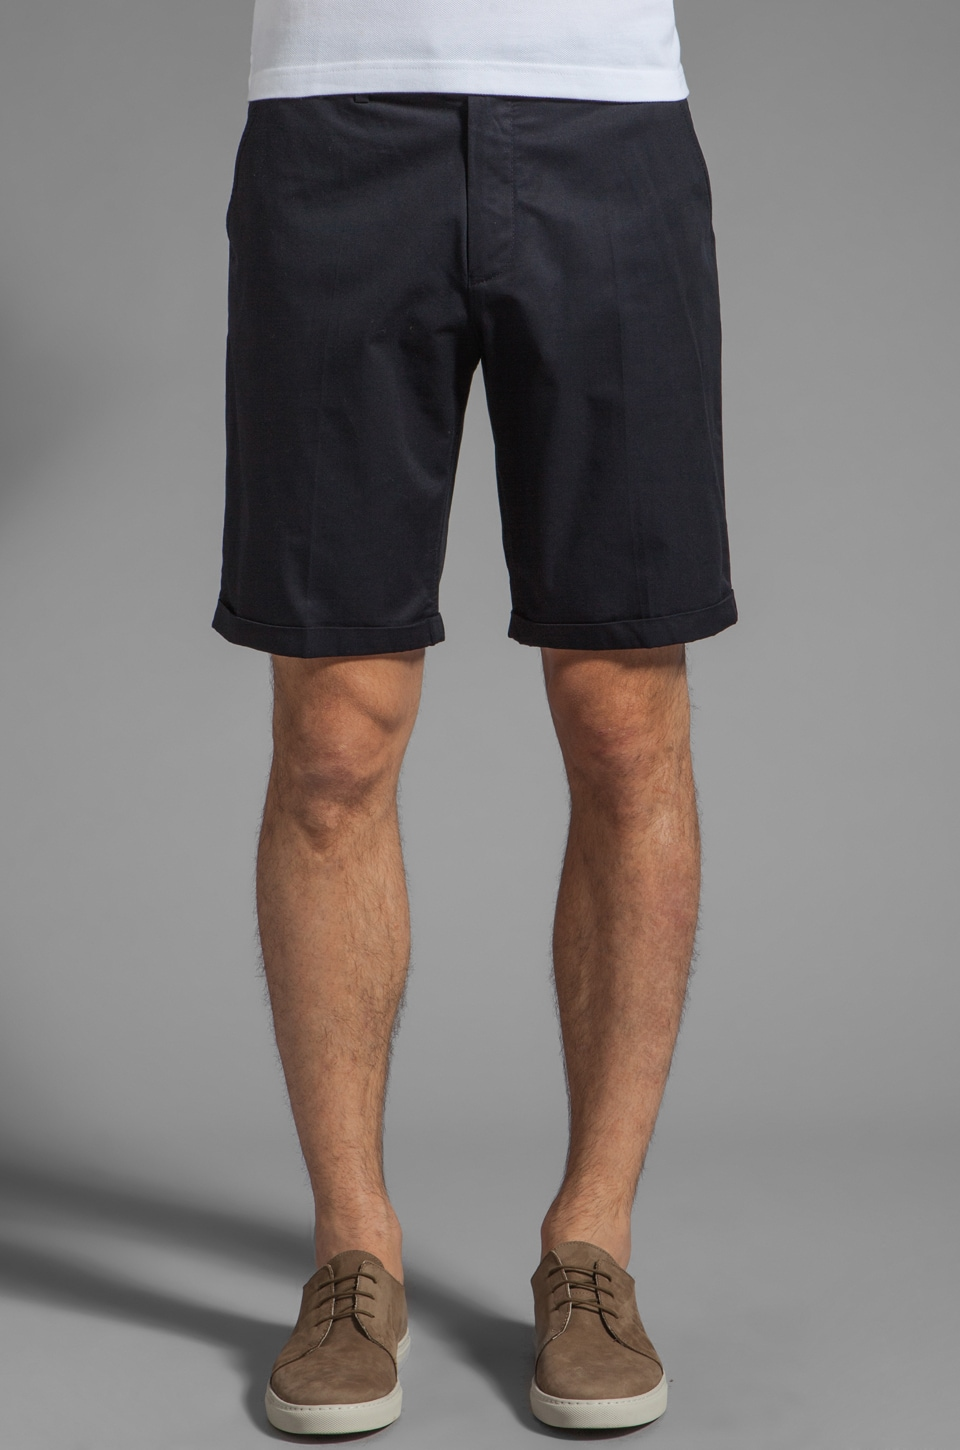 Fred Perry City Short in Navy